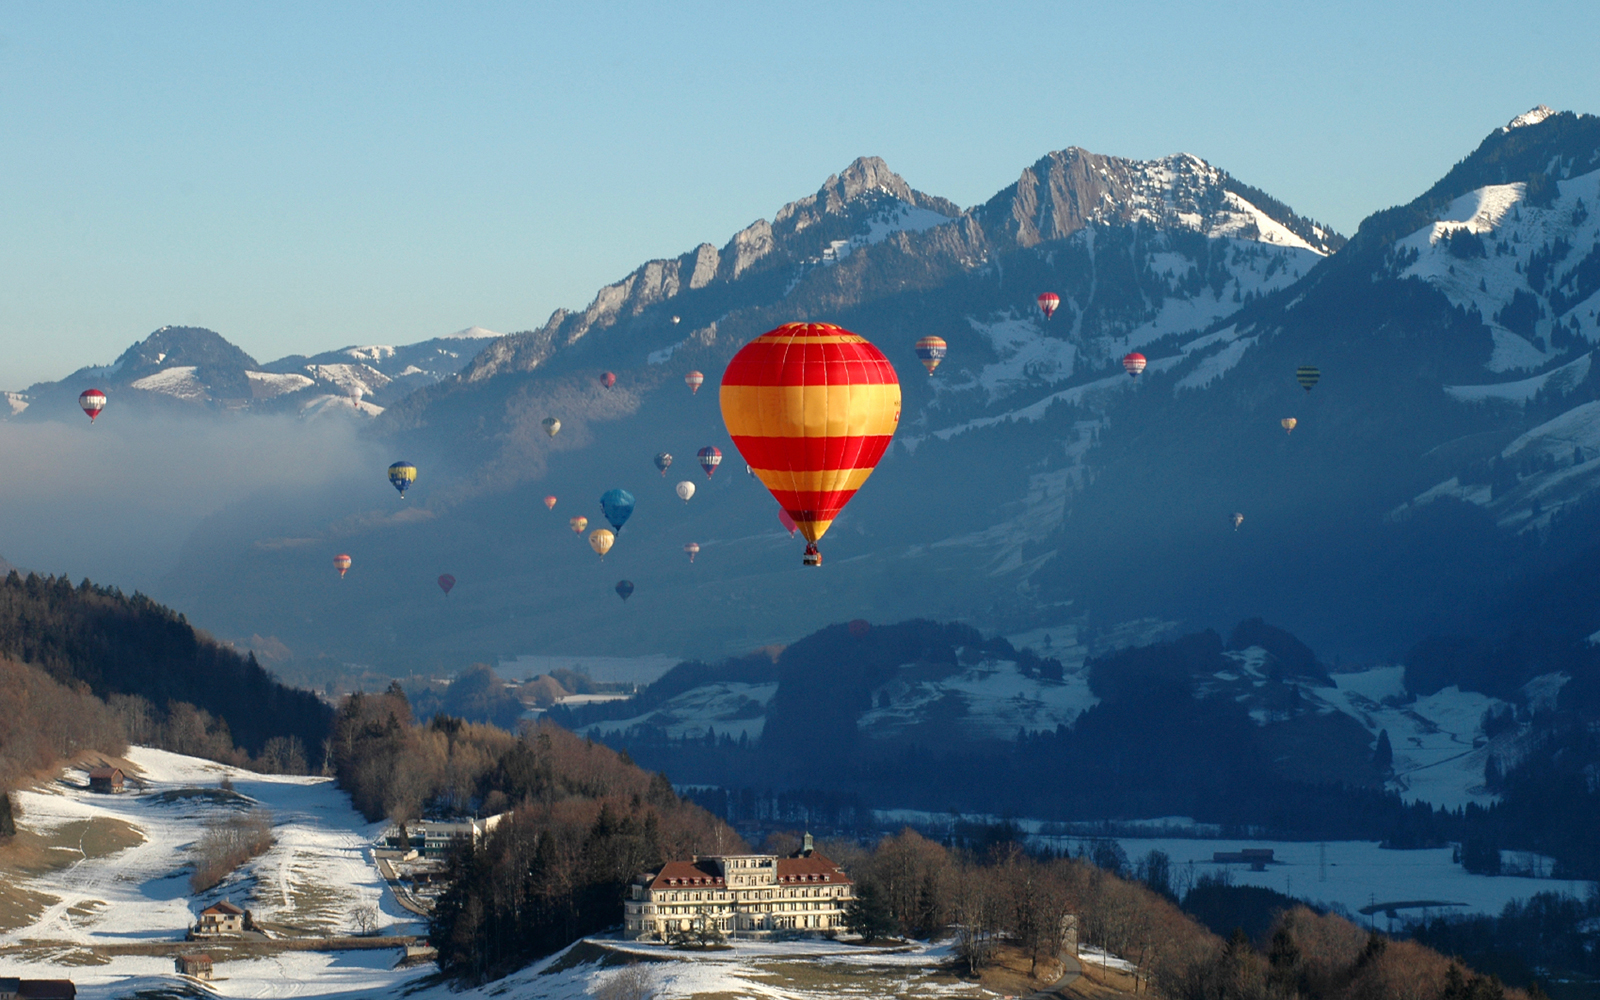 Best Hot-Air Balloon Rides: International Hot-Air Balloon Festival, Château d'Oex, Switzerland